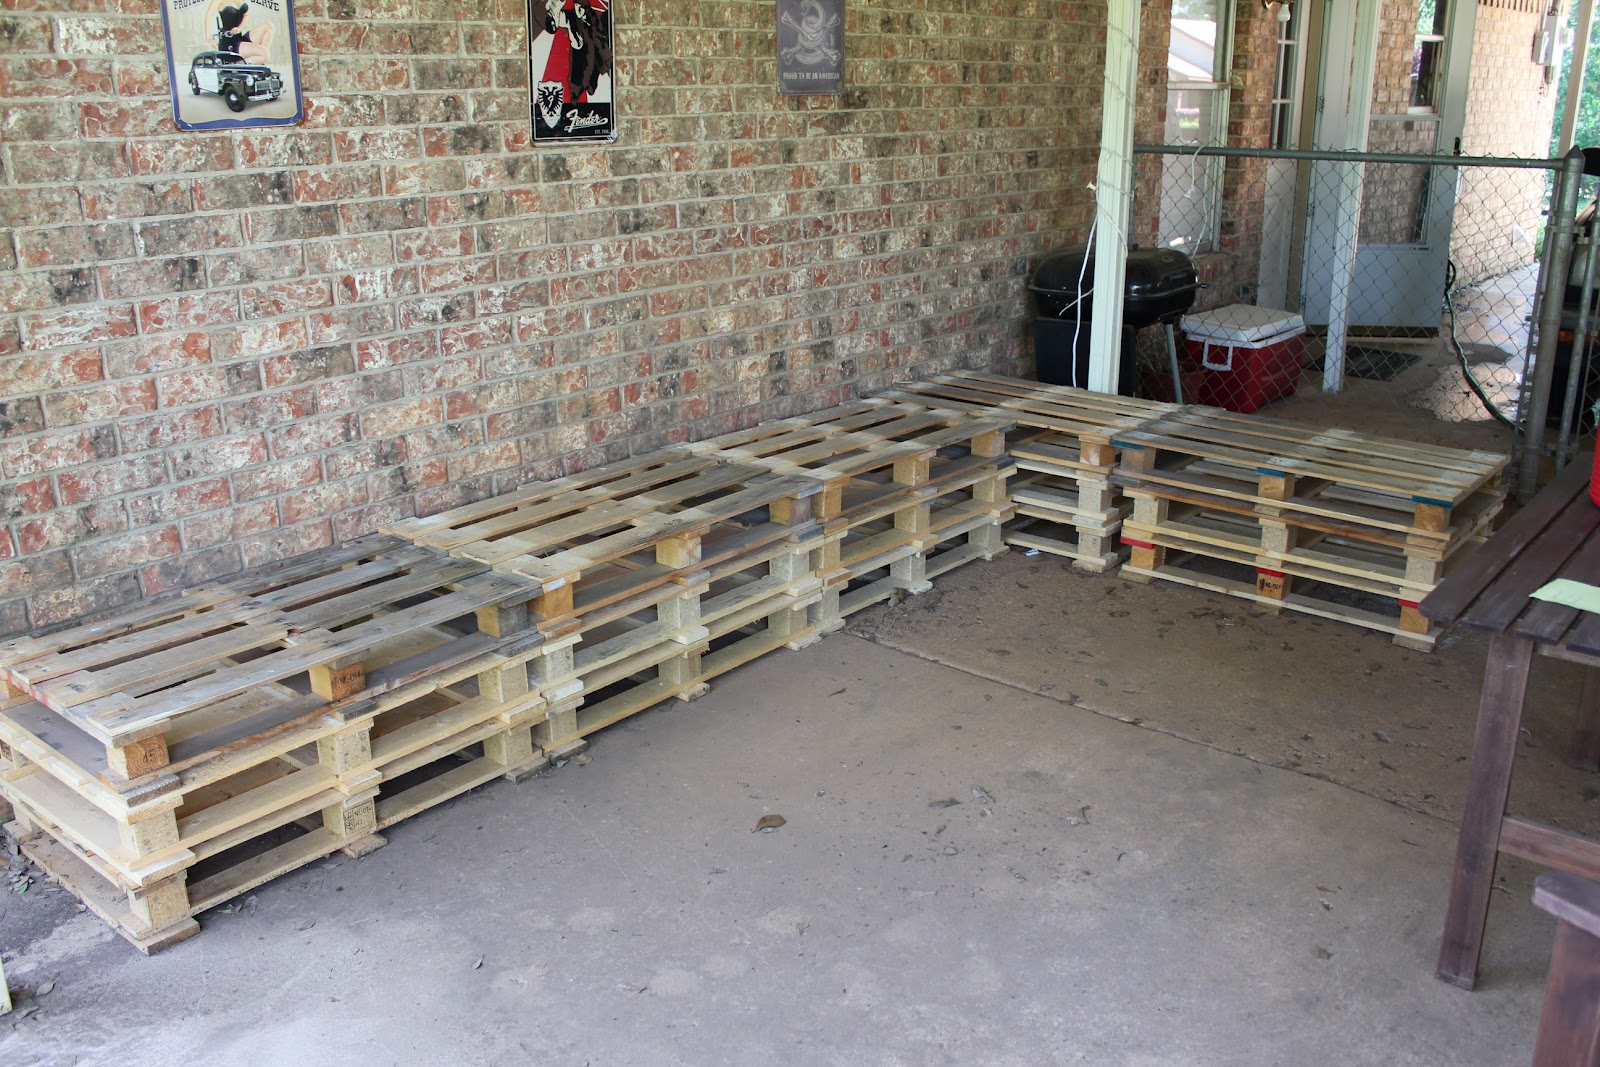 Patio Furniture Made with Pallets http://sassy-sparrow.blogspot.com/2012/04/diy-outdoor-patio-furniture-from.html